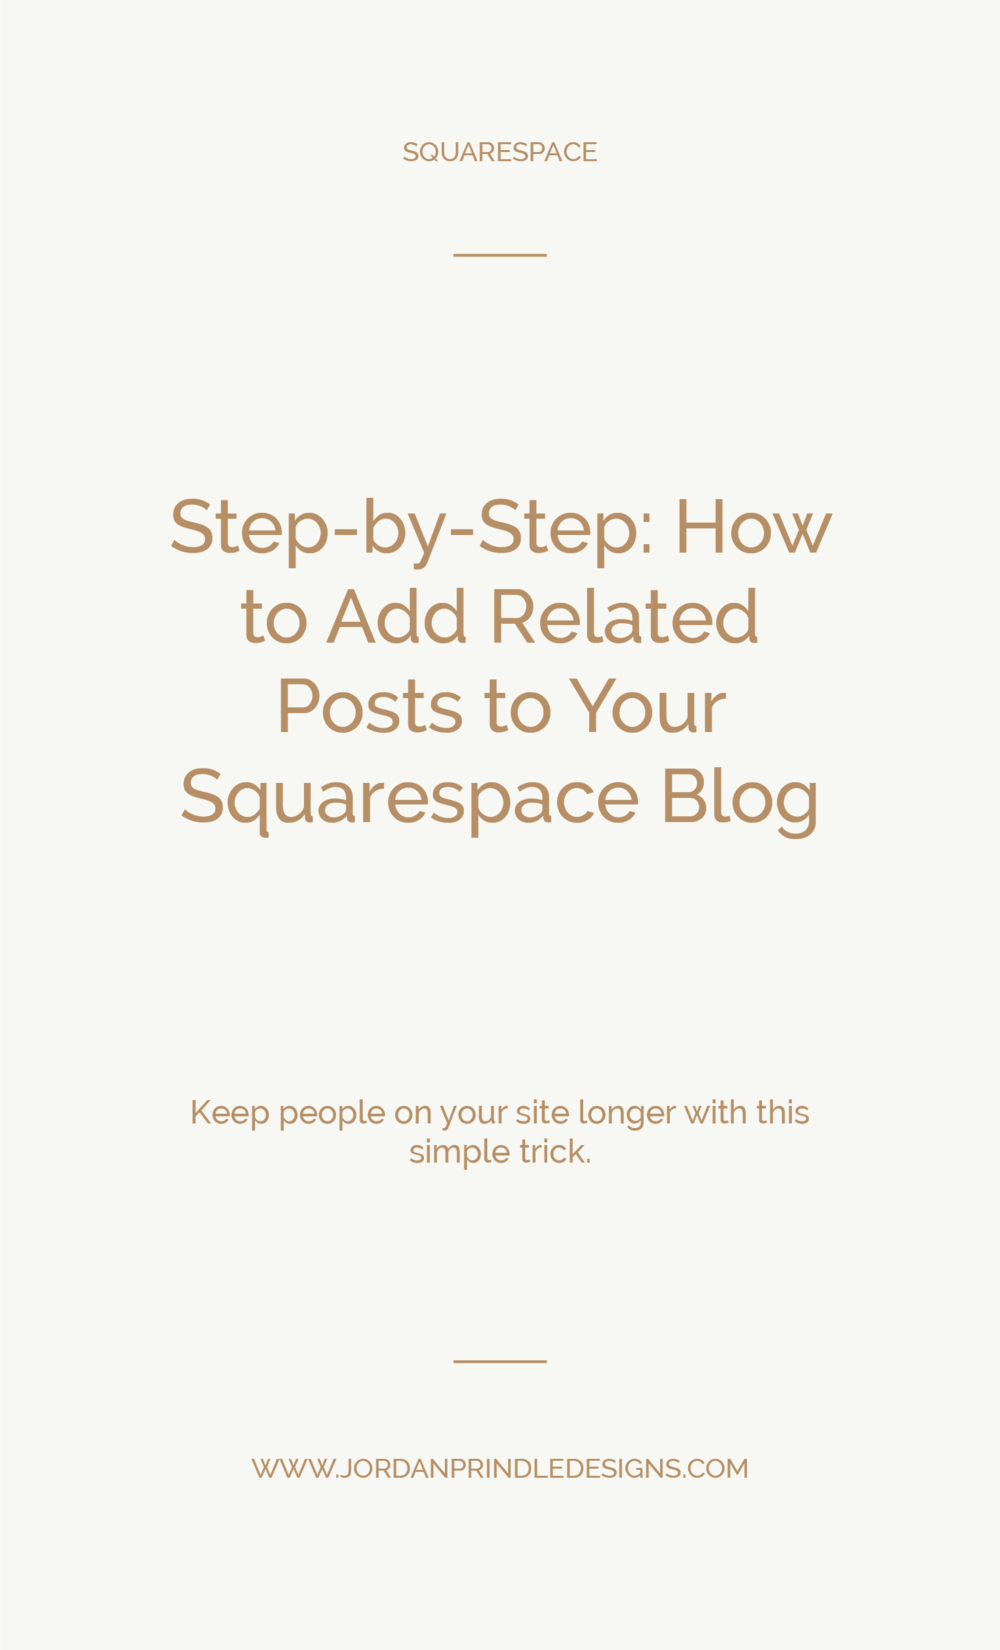 Step-by-Step: How to Add Related Posts to Your Squarespace Blog | A simple to follow #squarespacetutorial to add related posts to your Squarespace blog. Keep reading at www.jordanprindledesigns.com #squarespacedesign #squarespacetips #webdesigntips